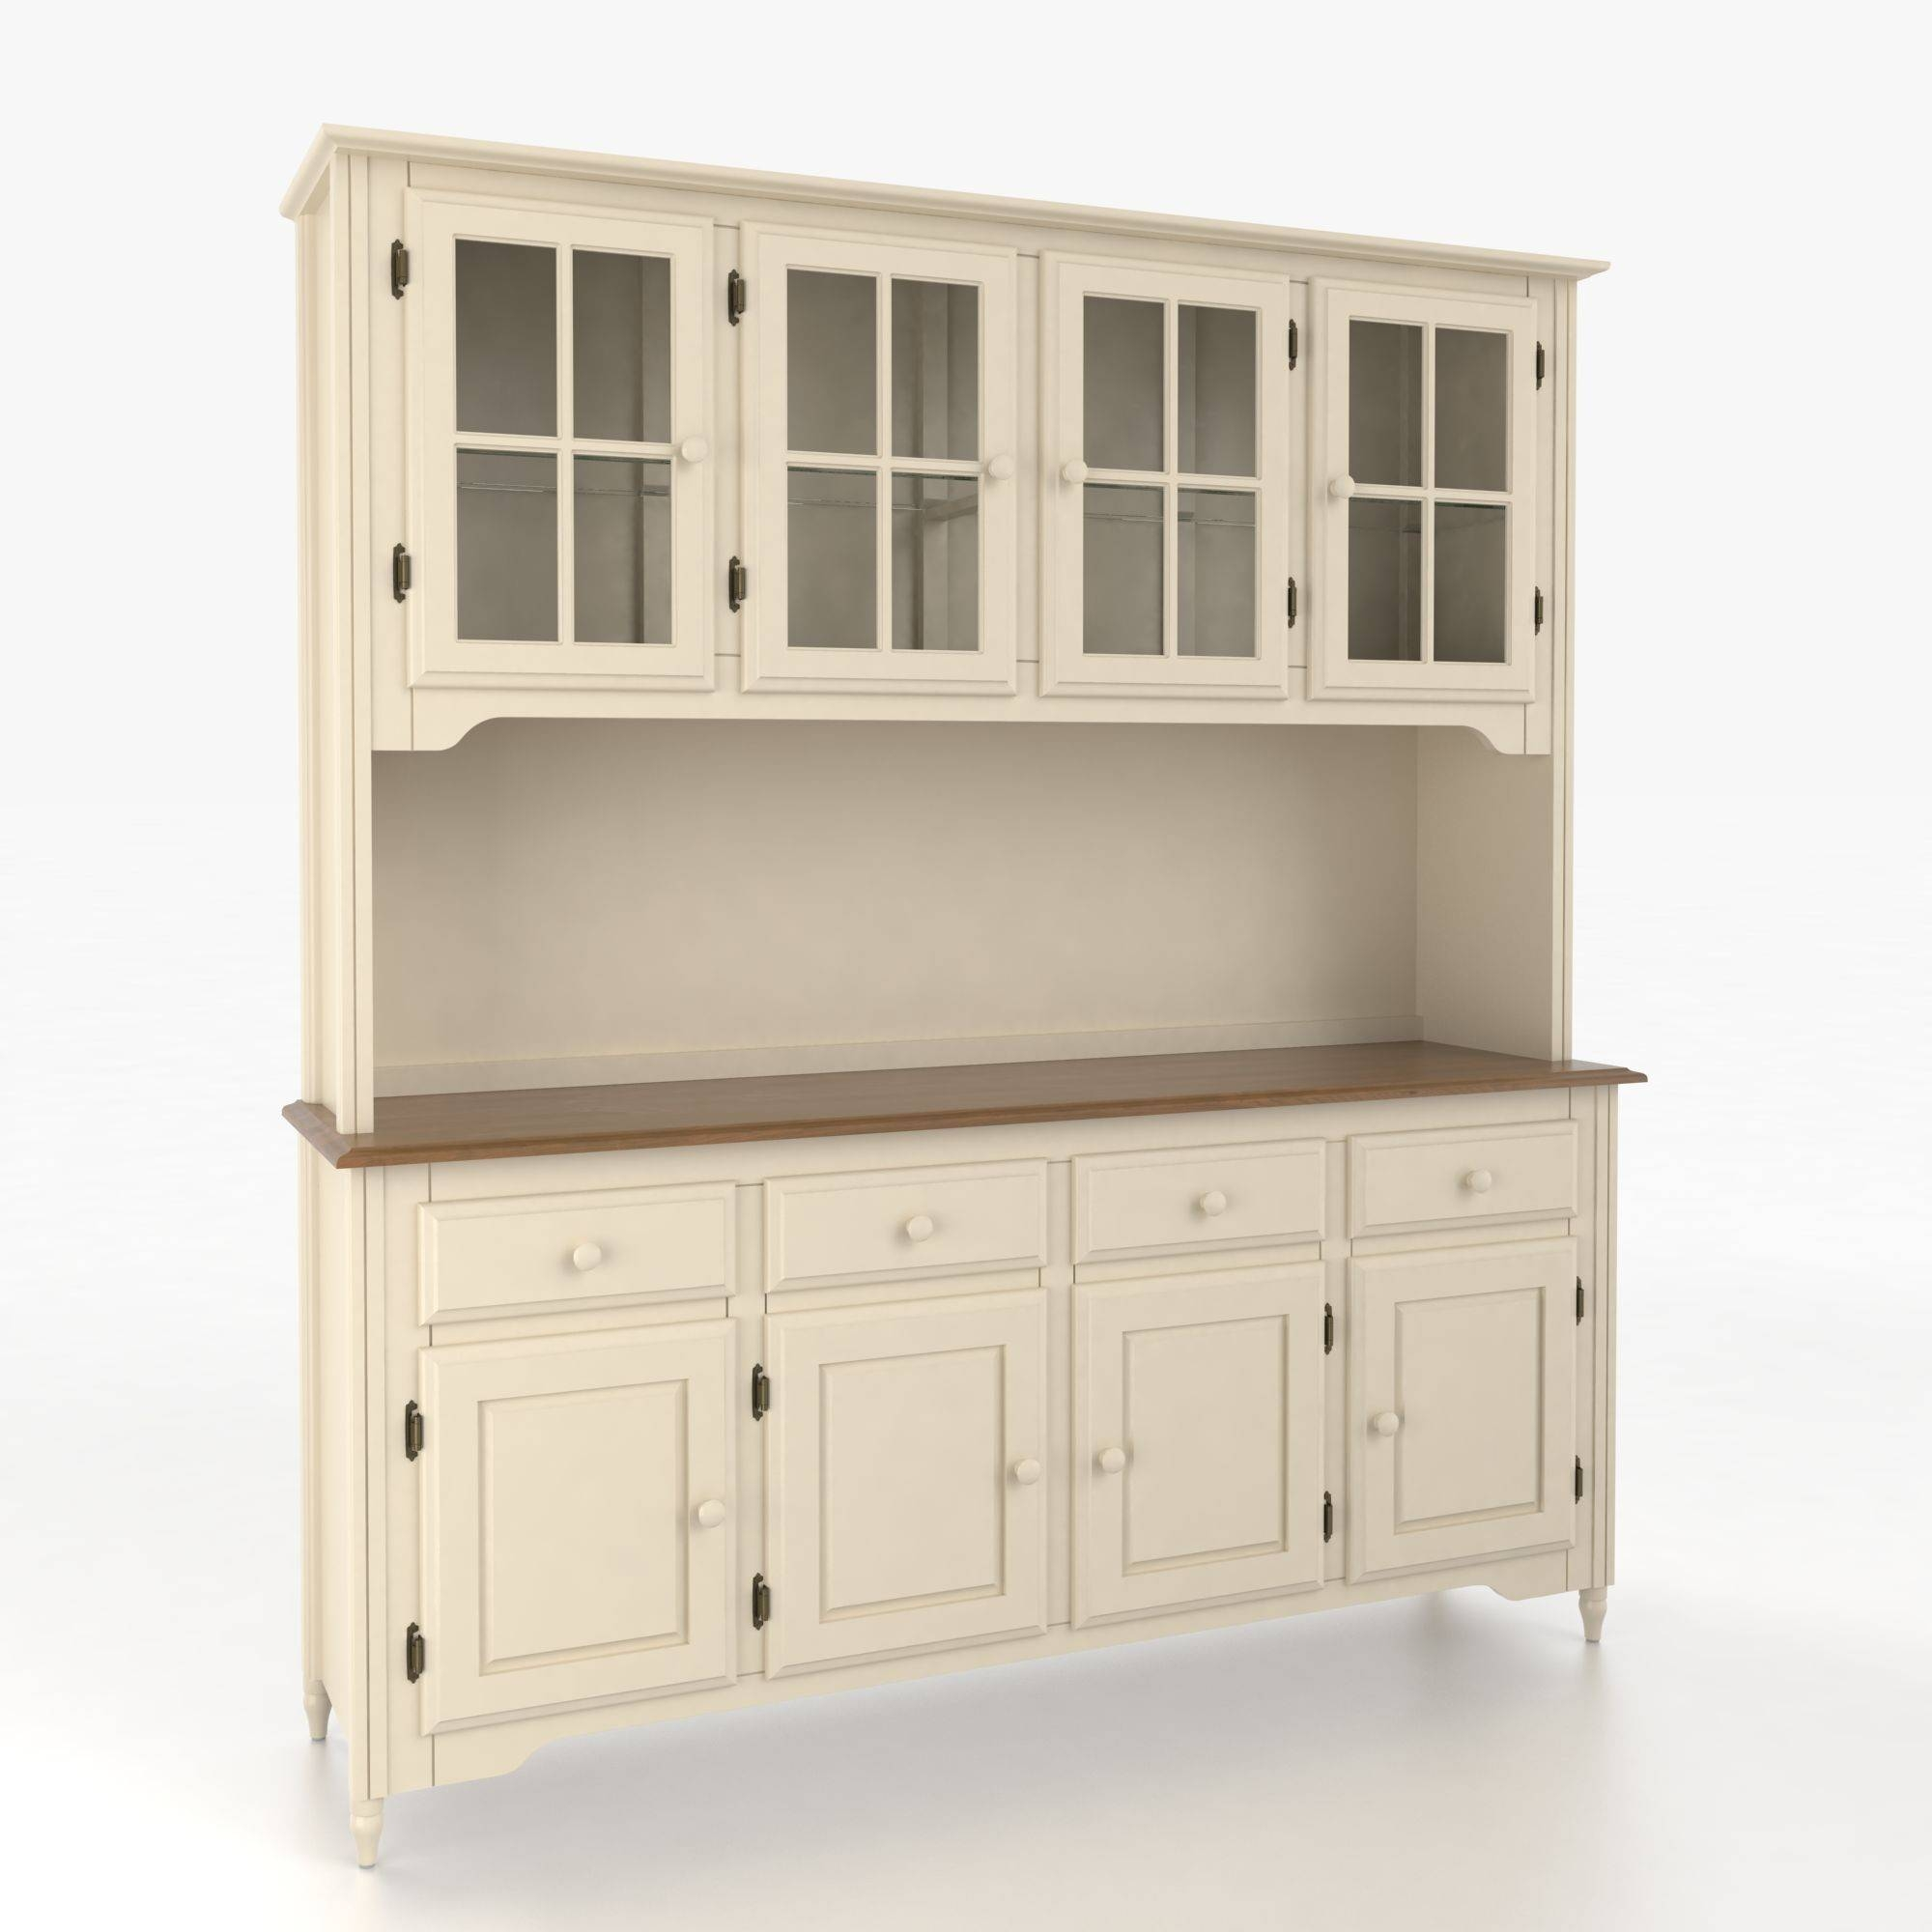 Sideboards. Outstanding Wooden Buffet And Hutch: Wooden-Buffet-And regarding White Wooden Sideboards (Image 22 of 30)